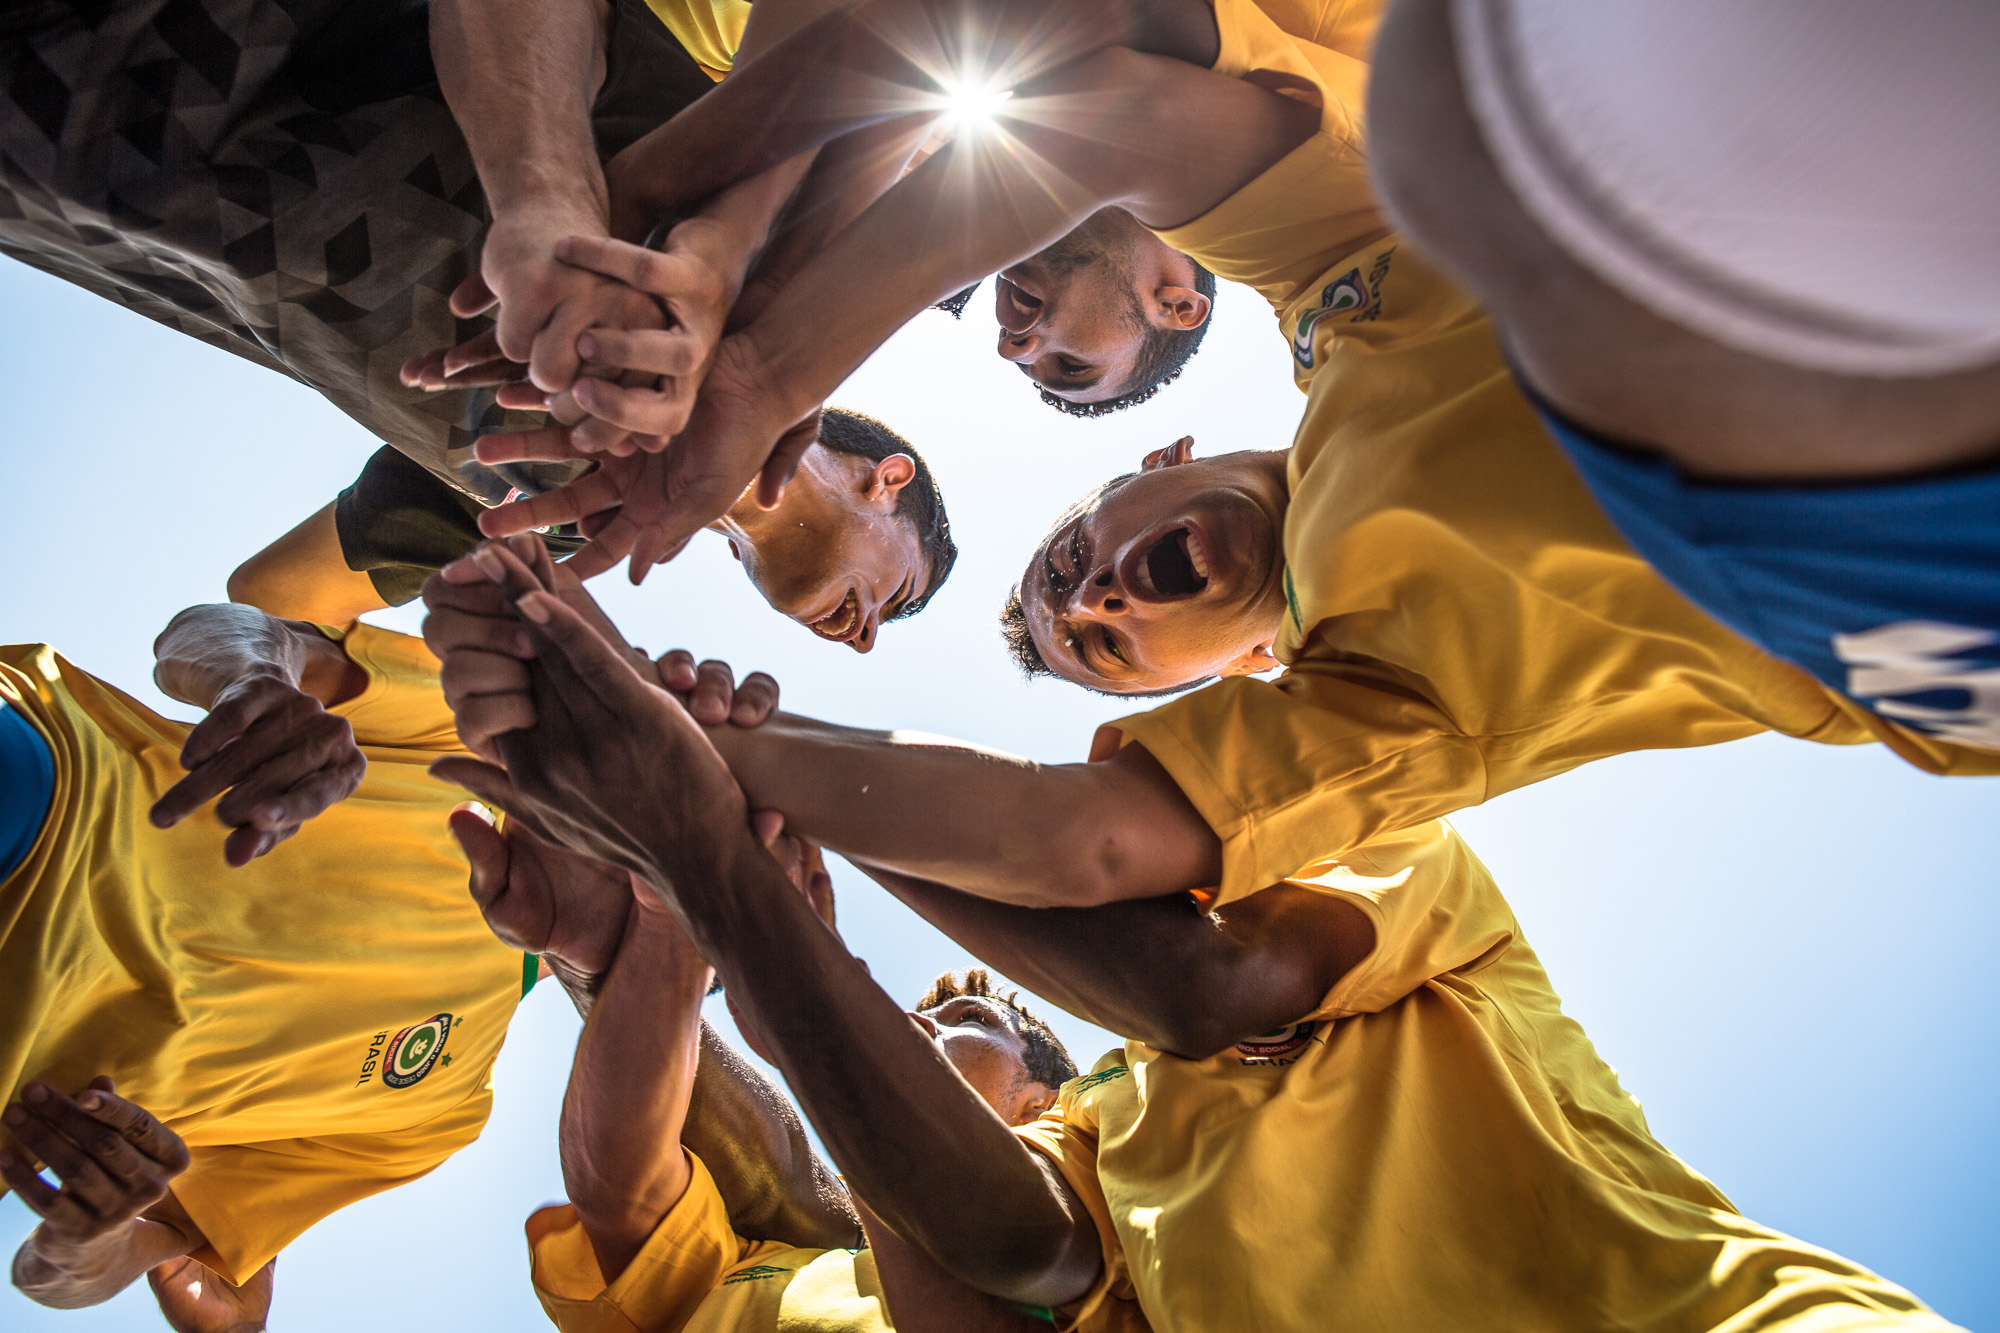 After the singing on national anthems, the Brazilian team huddle on the pitch right before kick-off.  The unseasonably hot weather during the tournament, meant that extra care had to be taken to hydrate the players.   As the competition is global in scale, the host nation changes each year.  This can sometimes raise logistical problems in certain cities, be it from low level corruption, petty theft, or security issues, all of which the organising team have to deal with and mitigate. However this has never been an insurmountable problem as is evidenced by the diverse range of nations visited by this tournament along with the many success stories from the individuals who pass through it.